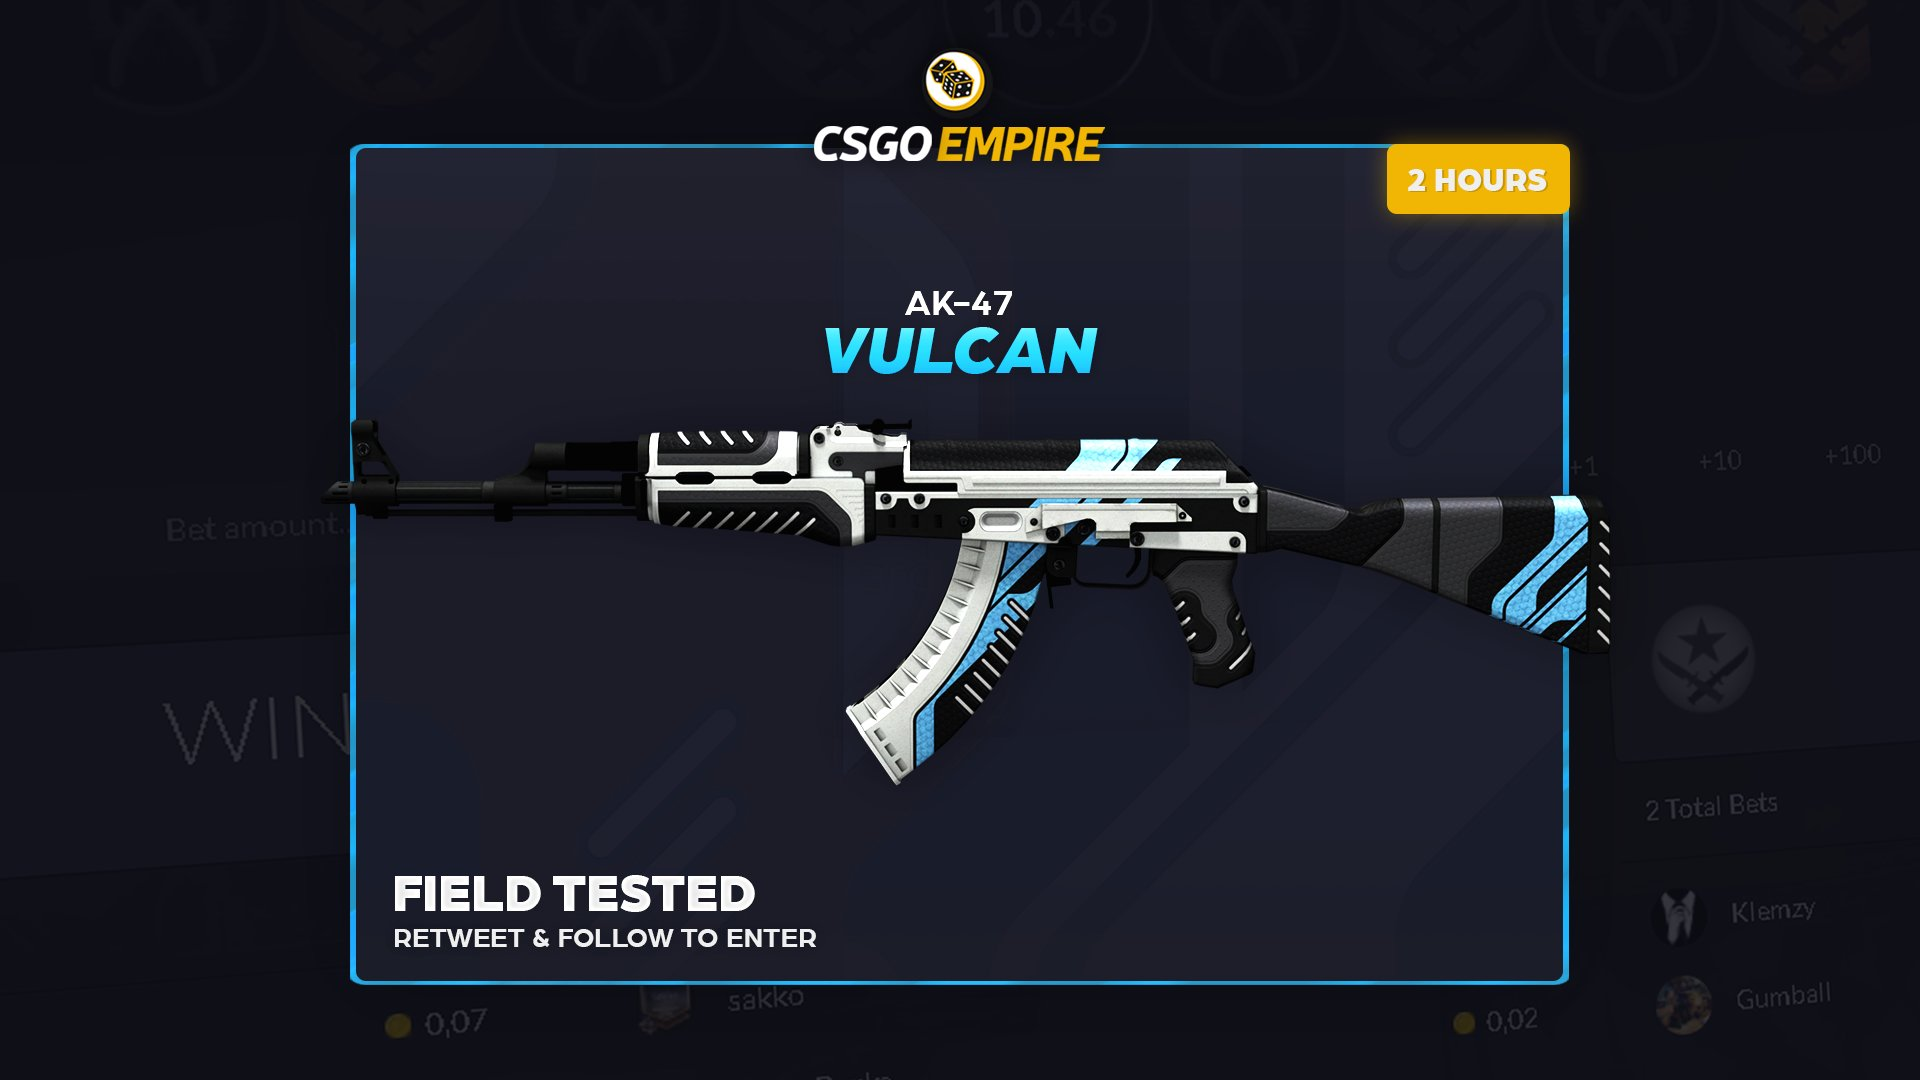 AK-47 | Vulcan (FT) Giveaway! ��  To enter: -RT -Follow  The winner will be picked in 2 hours! Good luck �� https://t.co/hpdR2iibrV